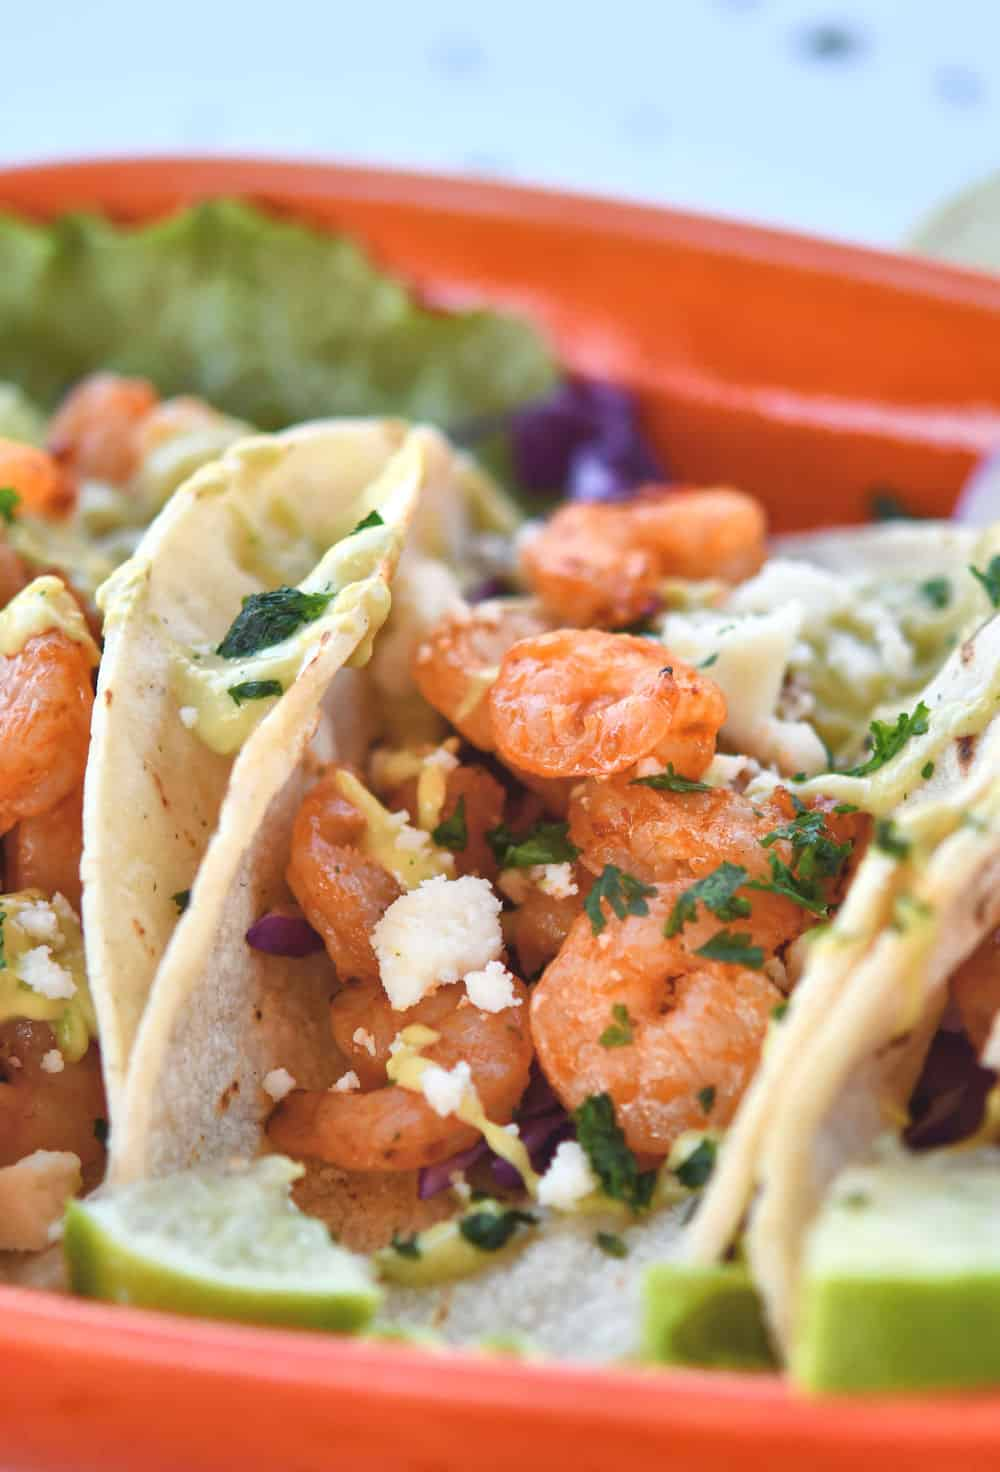 24Bite: Chile Lime Shrimp Tacos with Avocado Cream Recipe by Christian Guzman